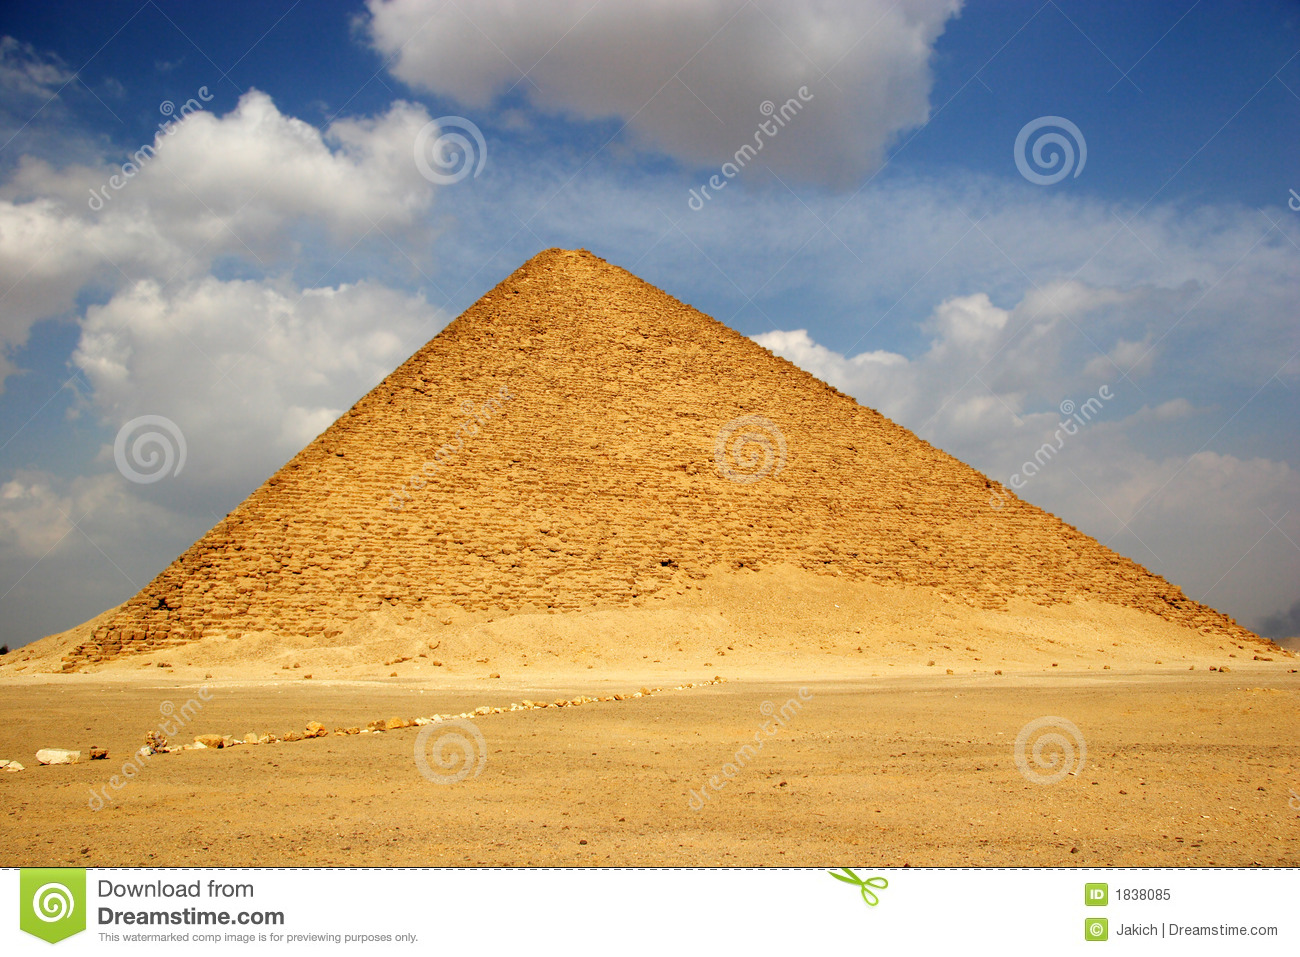 The Red Pyramid of Dahshur in Egypt